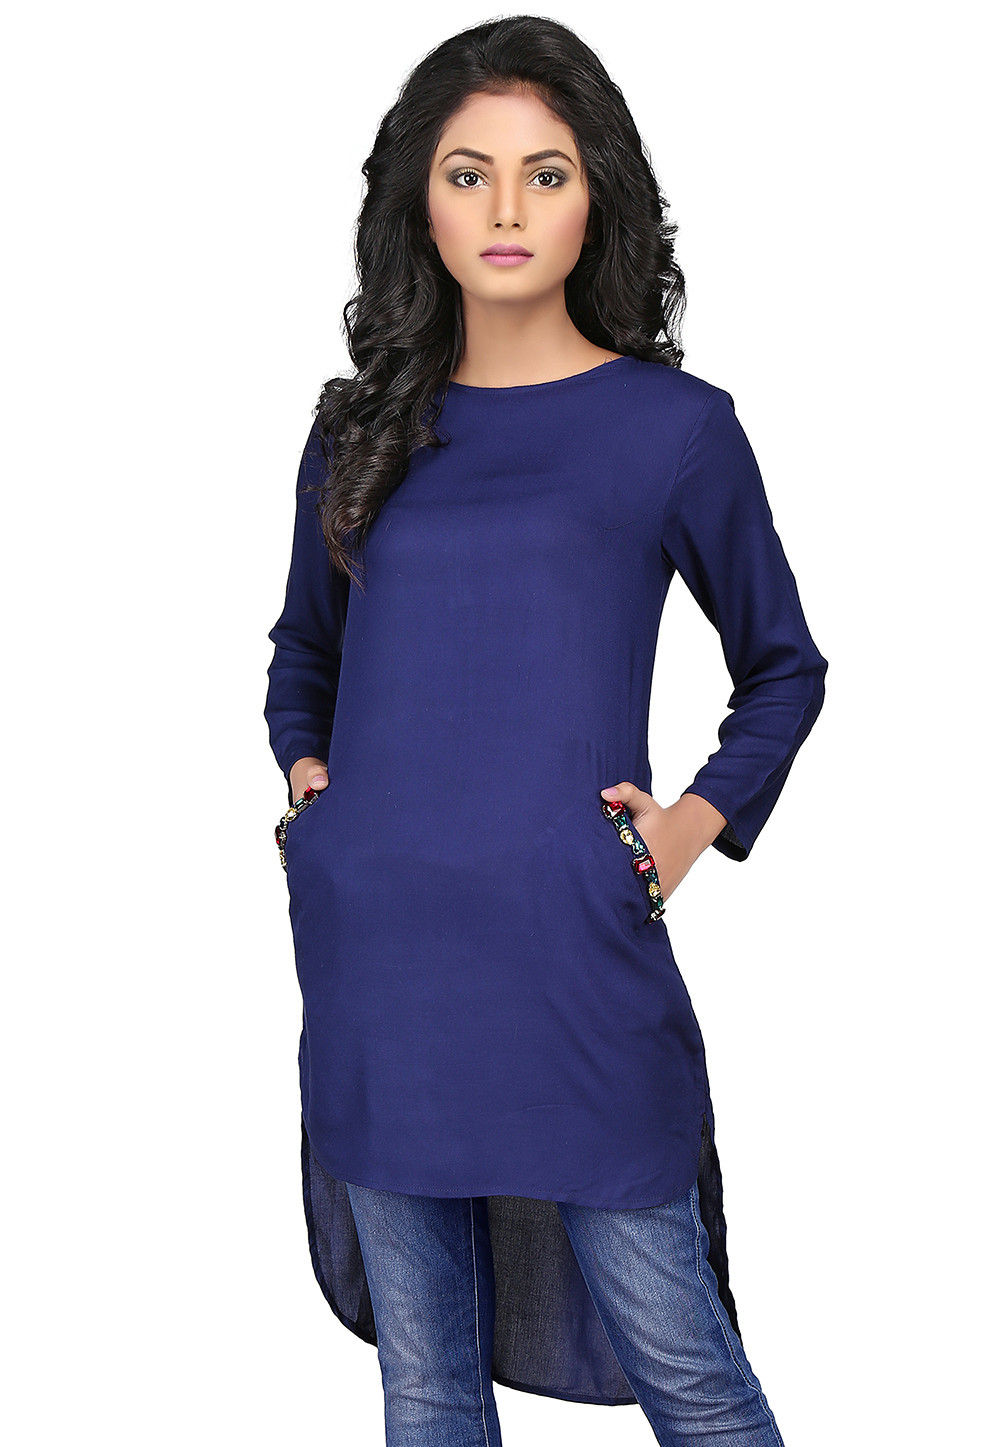 Plain Rayon High Low Tunic in Navy Blue